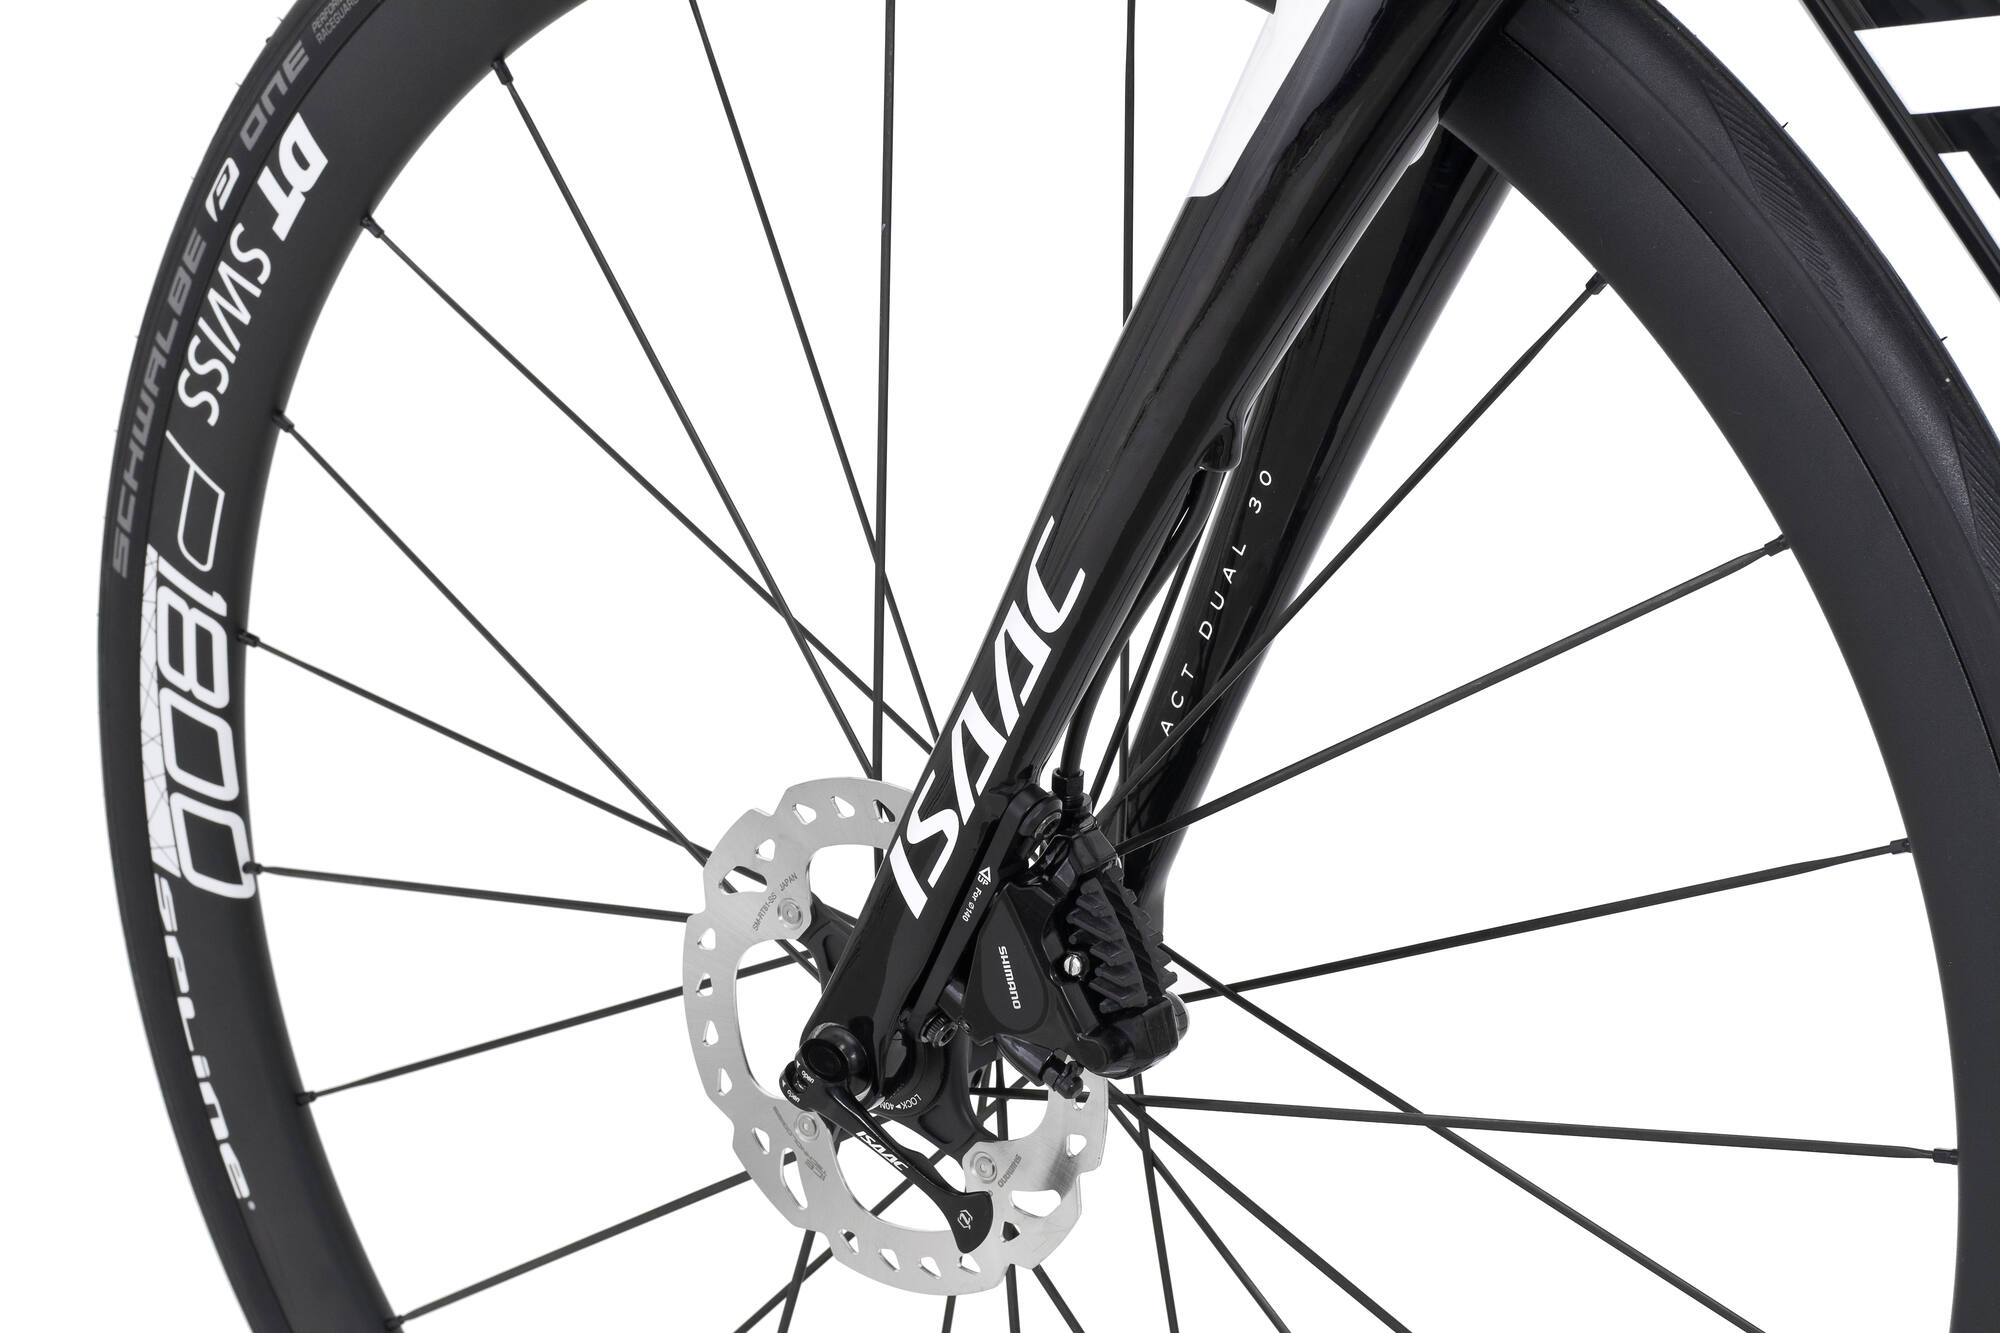 BIKE KAON DISC | SRAM RIVAL